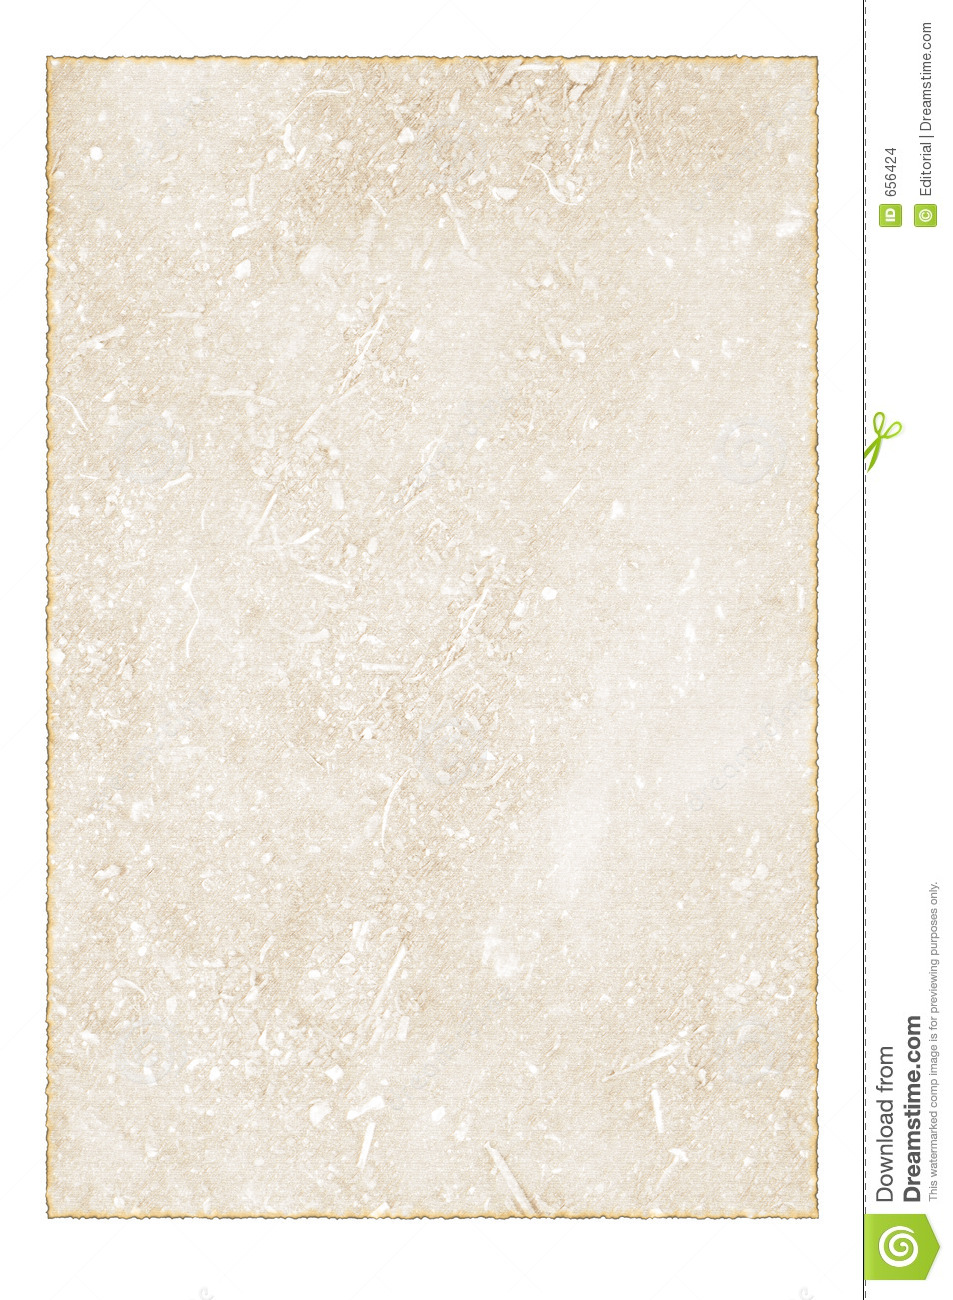 Stock Images: Japanese rice paper. Image: 656424